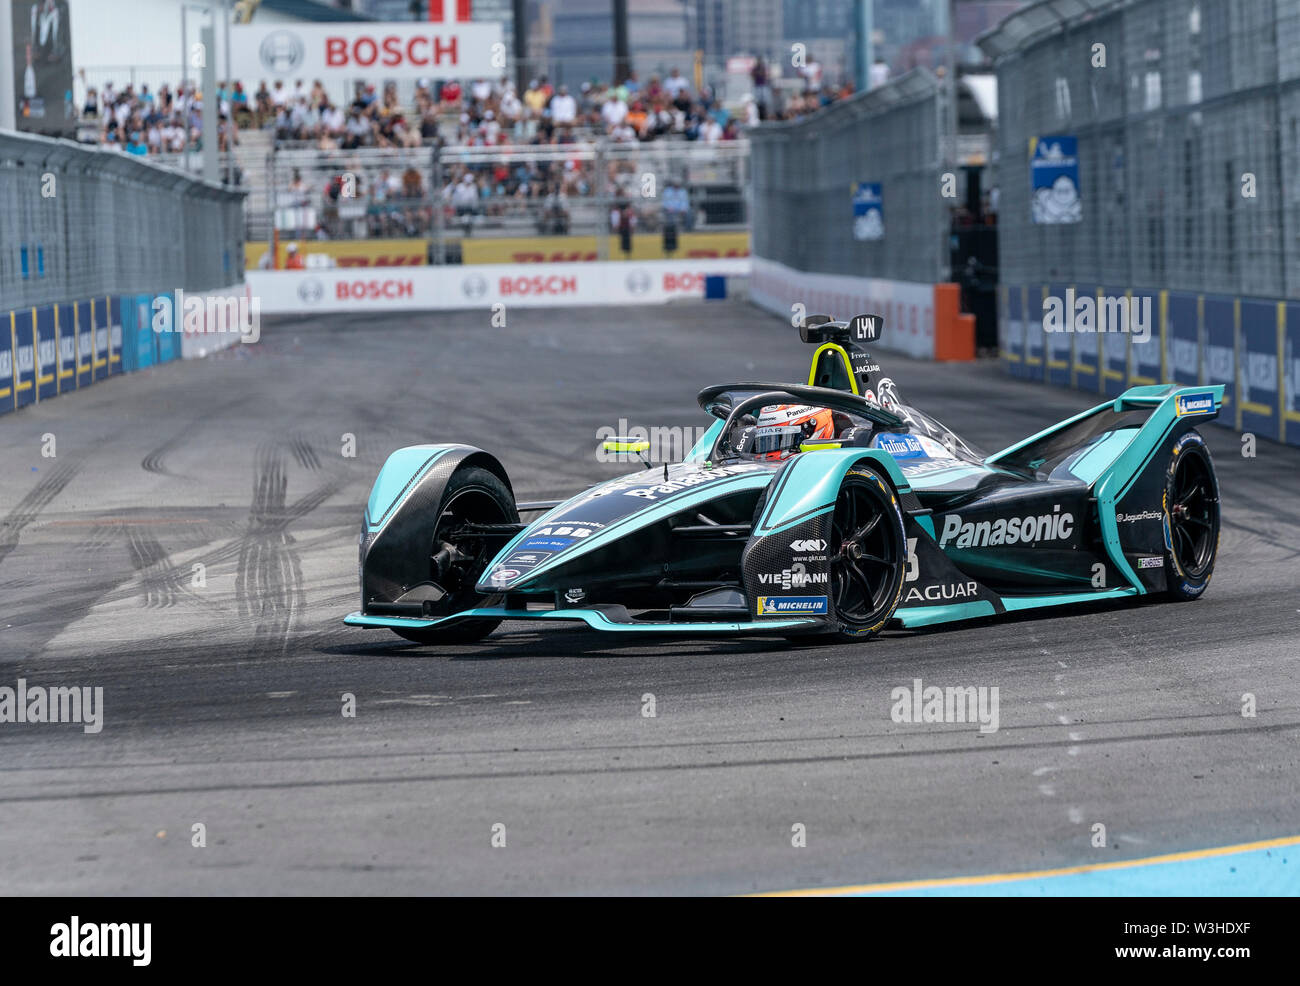 New York, United States. 14th July, 2019. Alex Lynn of Panasonic team drives electric racing car during New York City E-Prix 2019 Formula E Round 13 at Red Hook Credit: Lev Radin/Pacific Press/Alamy Live News - Stock Image